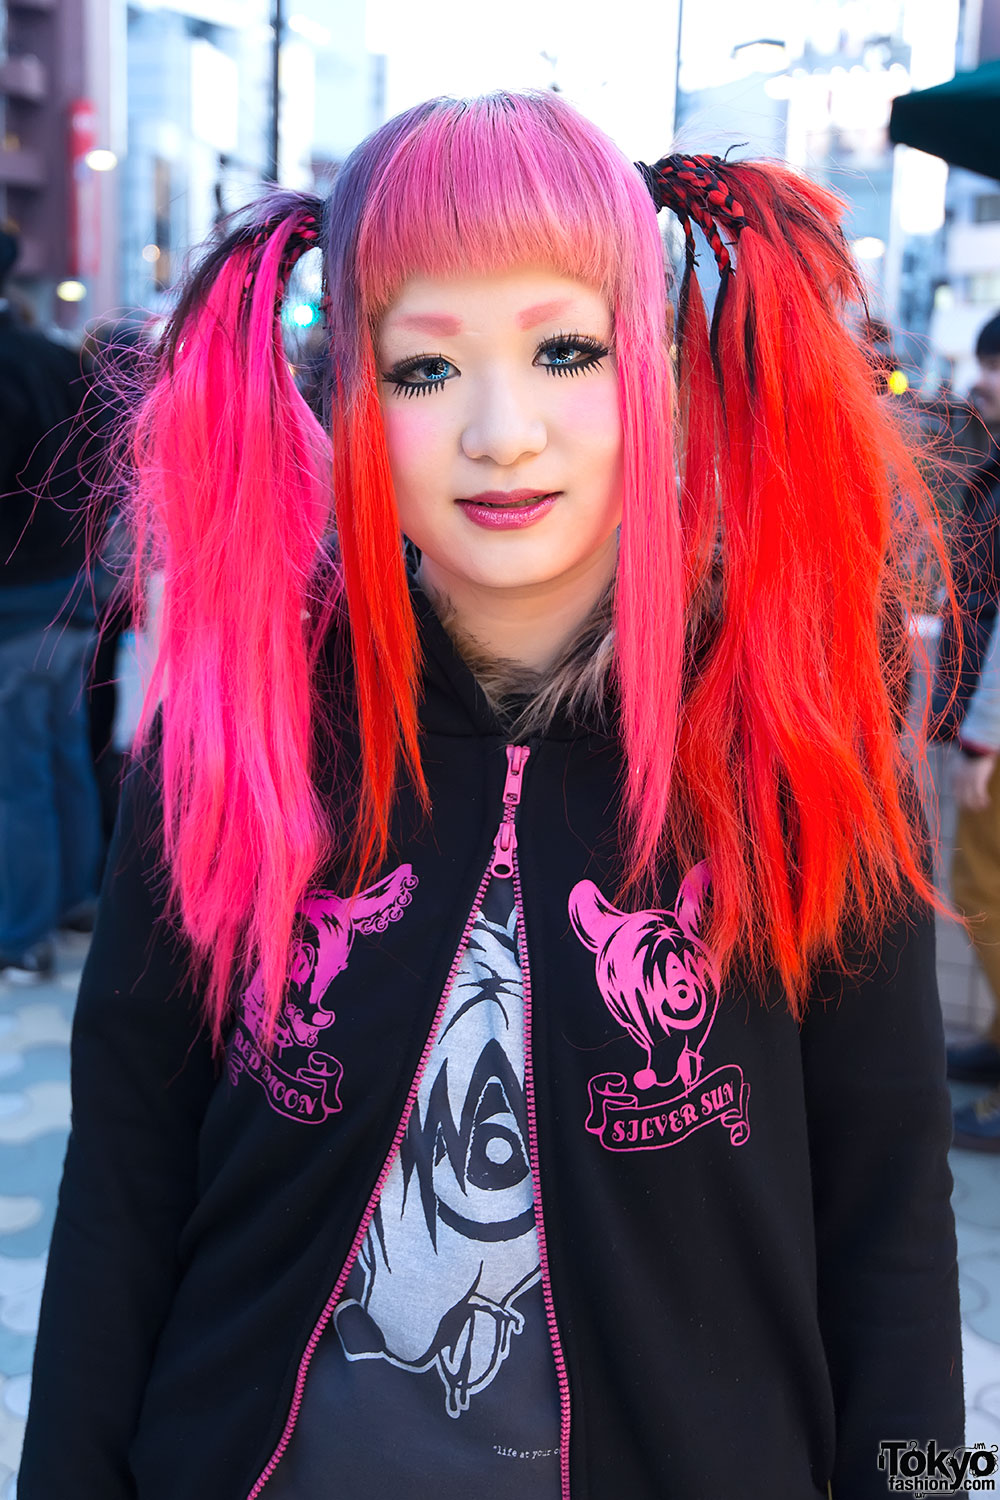 Neon Red Pink Hair in